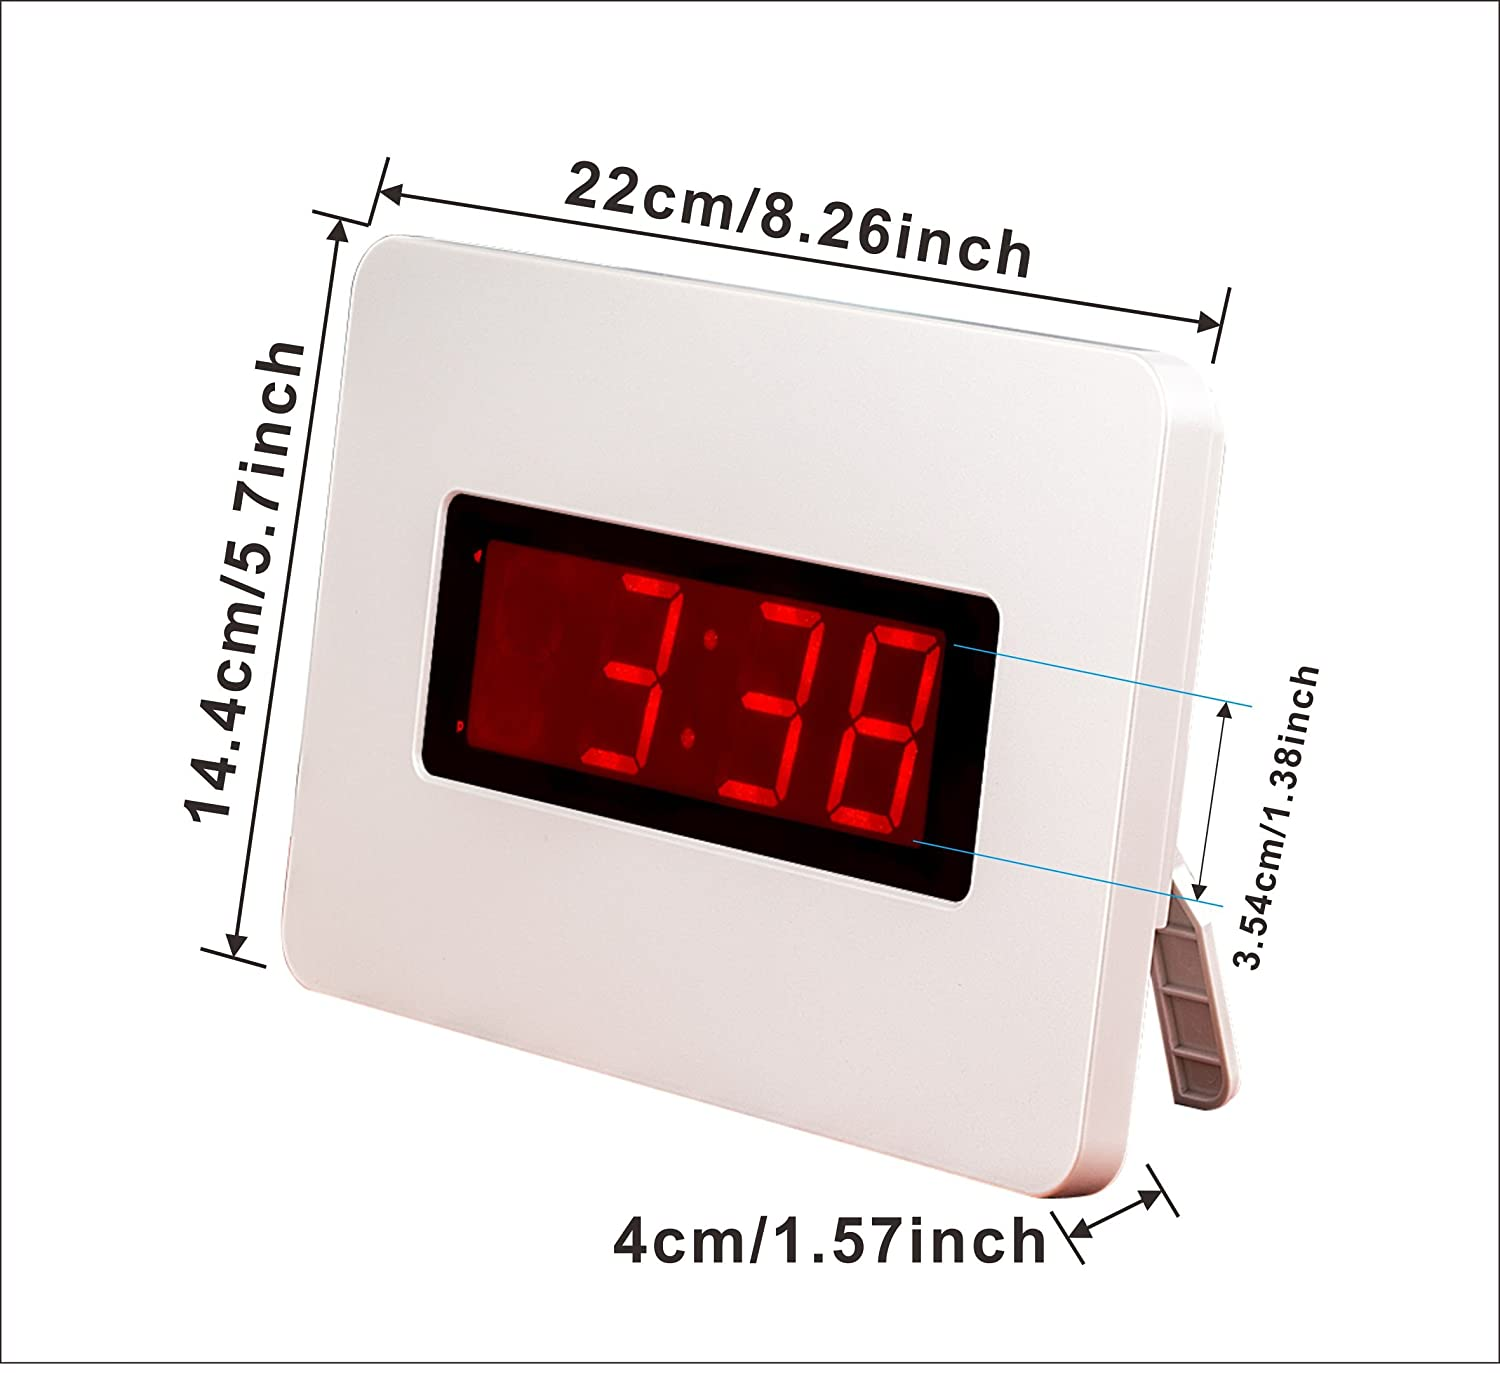 Kwanwa White Wall LED Alarm Clock Battery Powered Only,2 Batteries Keep the 1.4 LED Time Display Up to 1 Year Without Any External Power Supply,Big Red LED Numbers Display,You Don't Have to Find a Outlet For It Guangkehua KW616W